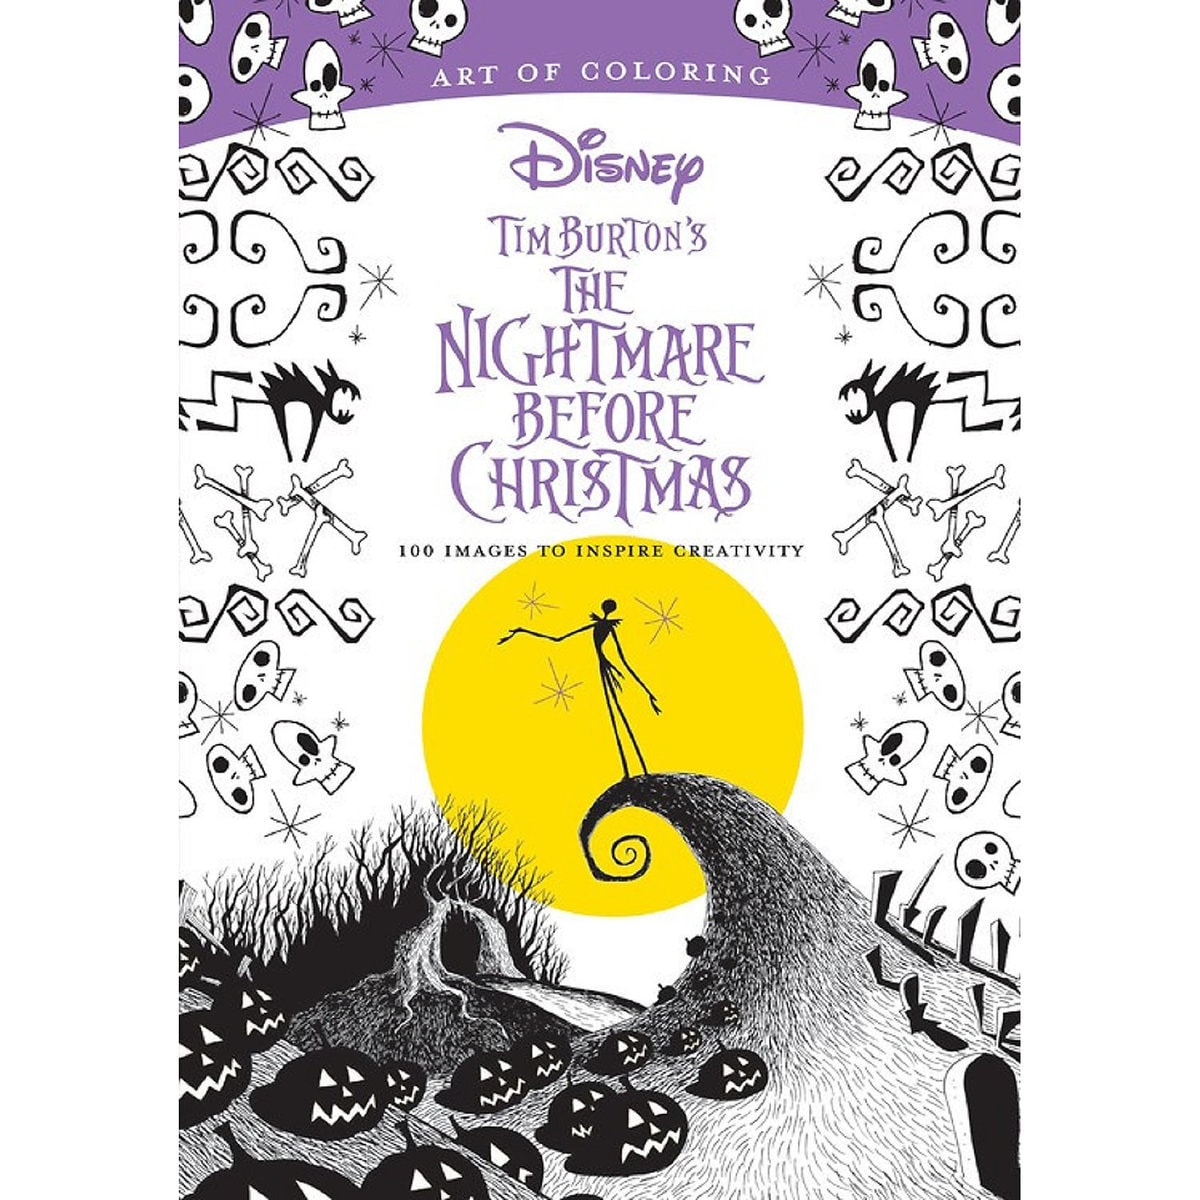 Tim Burtons The Nightmare Before Christmas Art Of Coloring Book